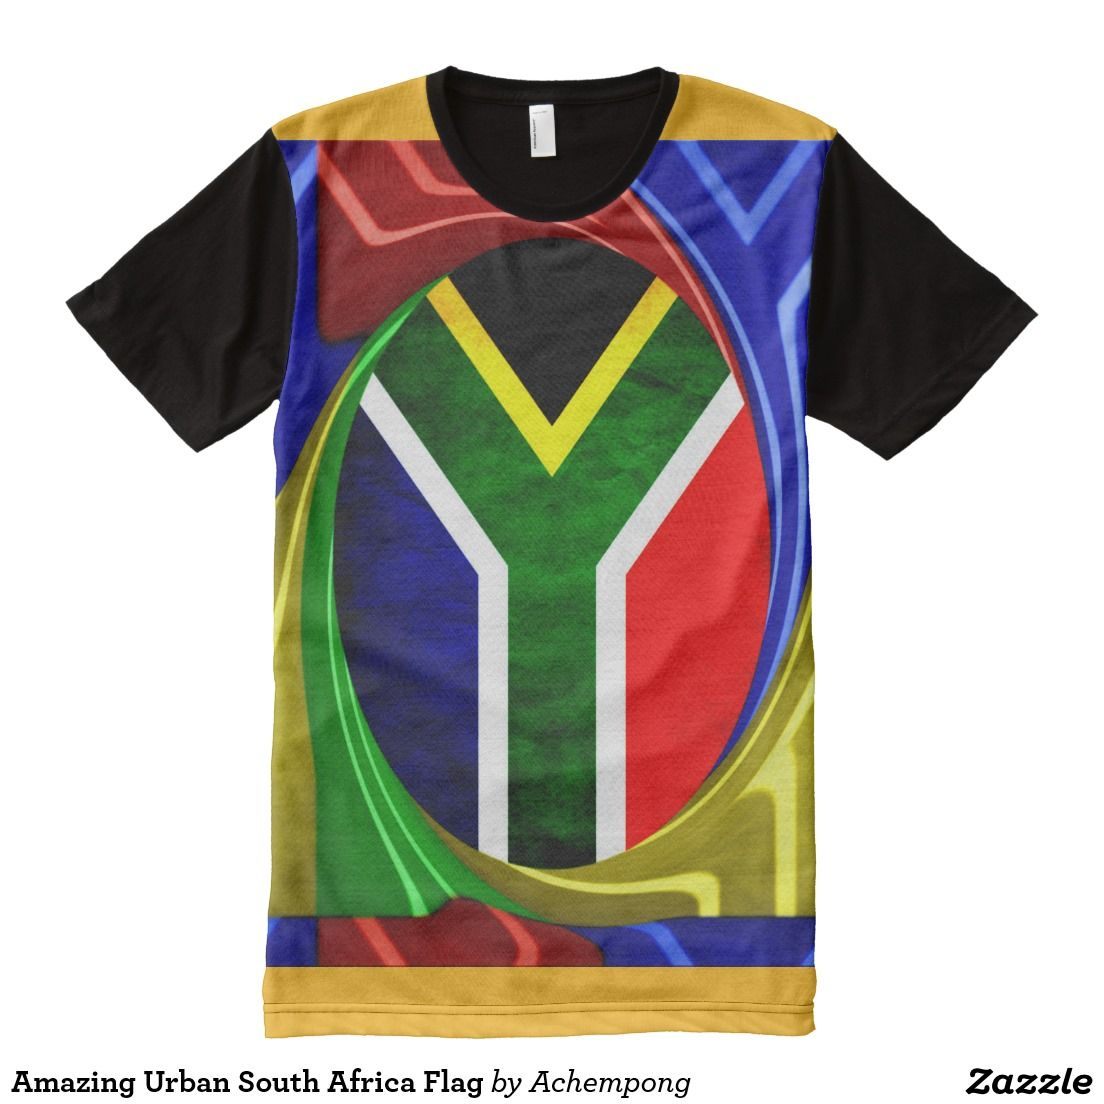 Amazing Urban South Africa Flag All-Over-Print Shirt